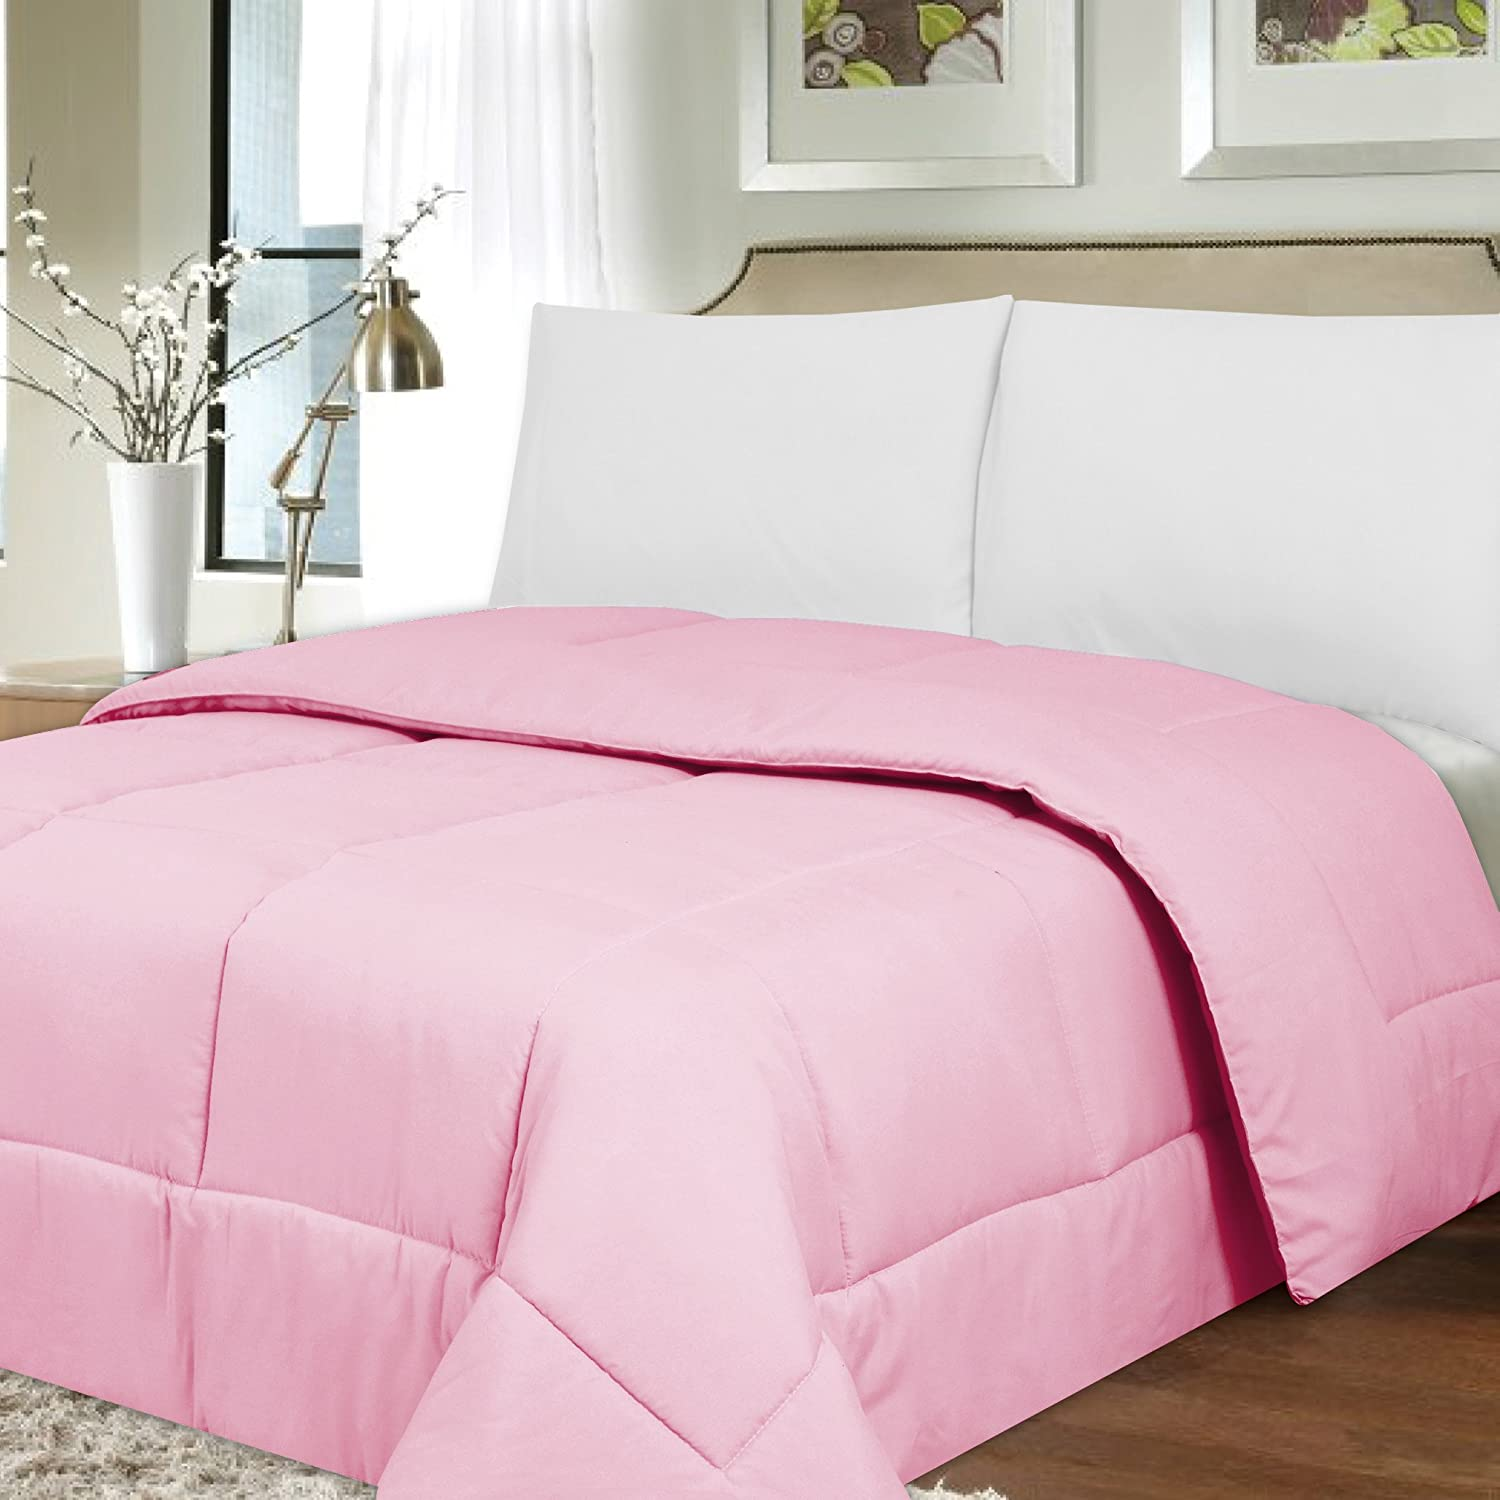 Sweet Home Collection Luxurious Down Alternative Brushed Microfiber Comforter, Pink